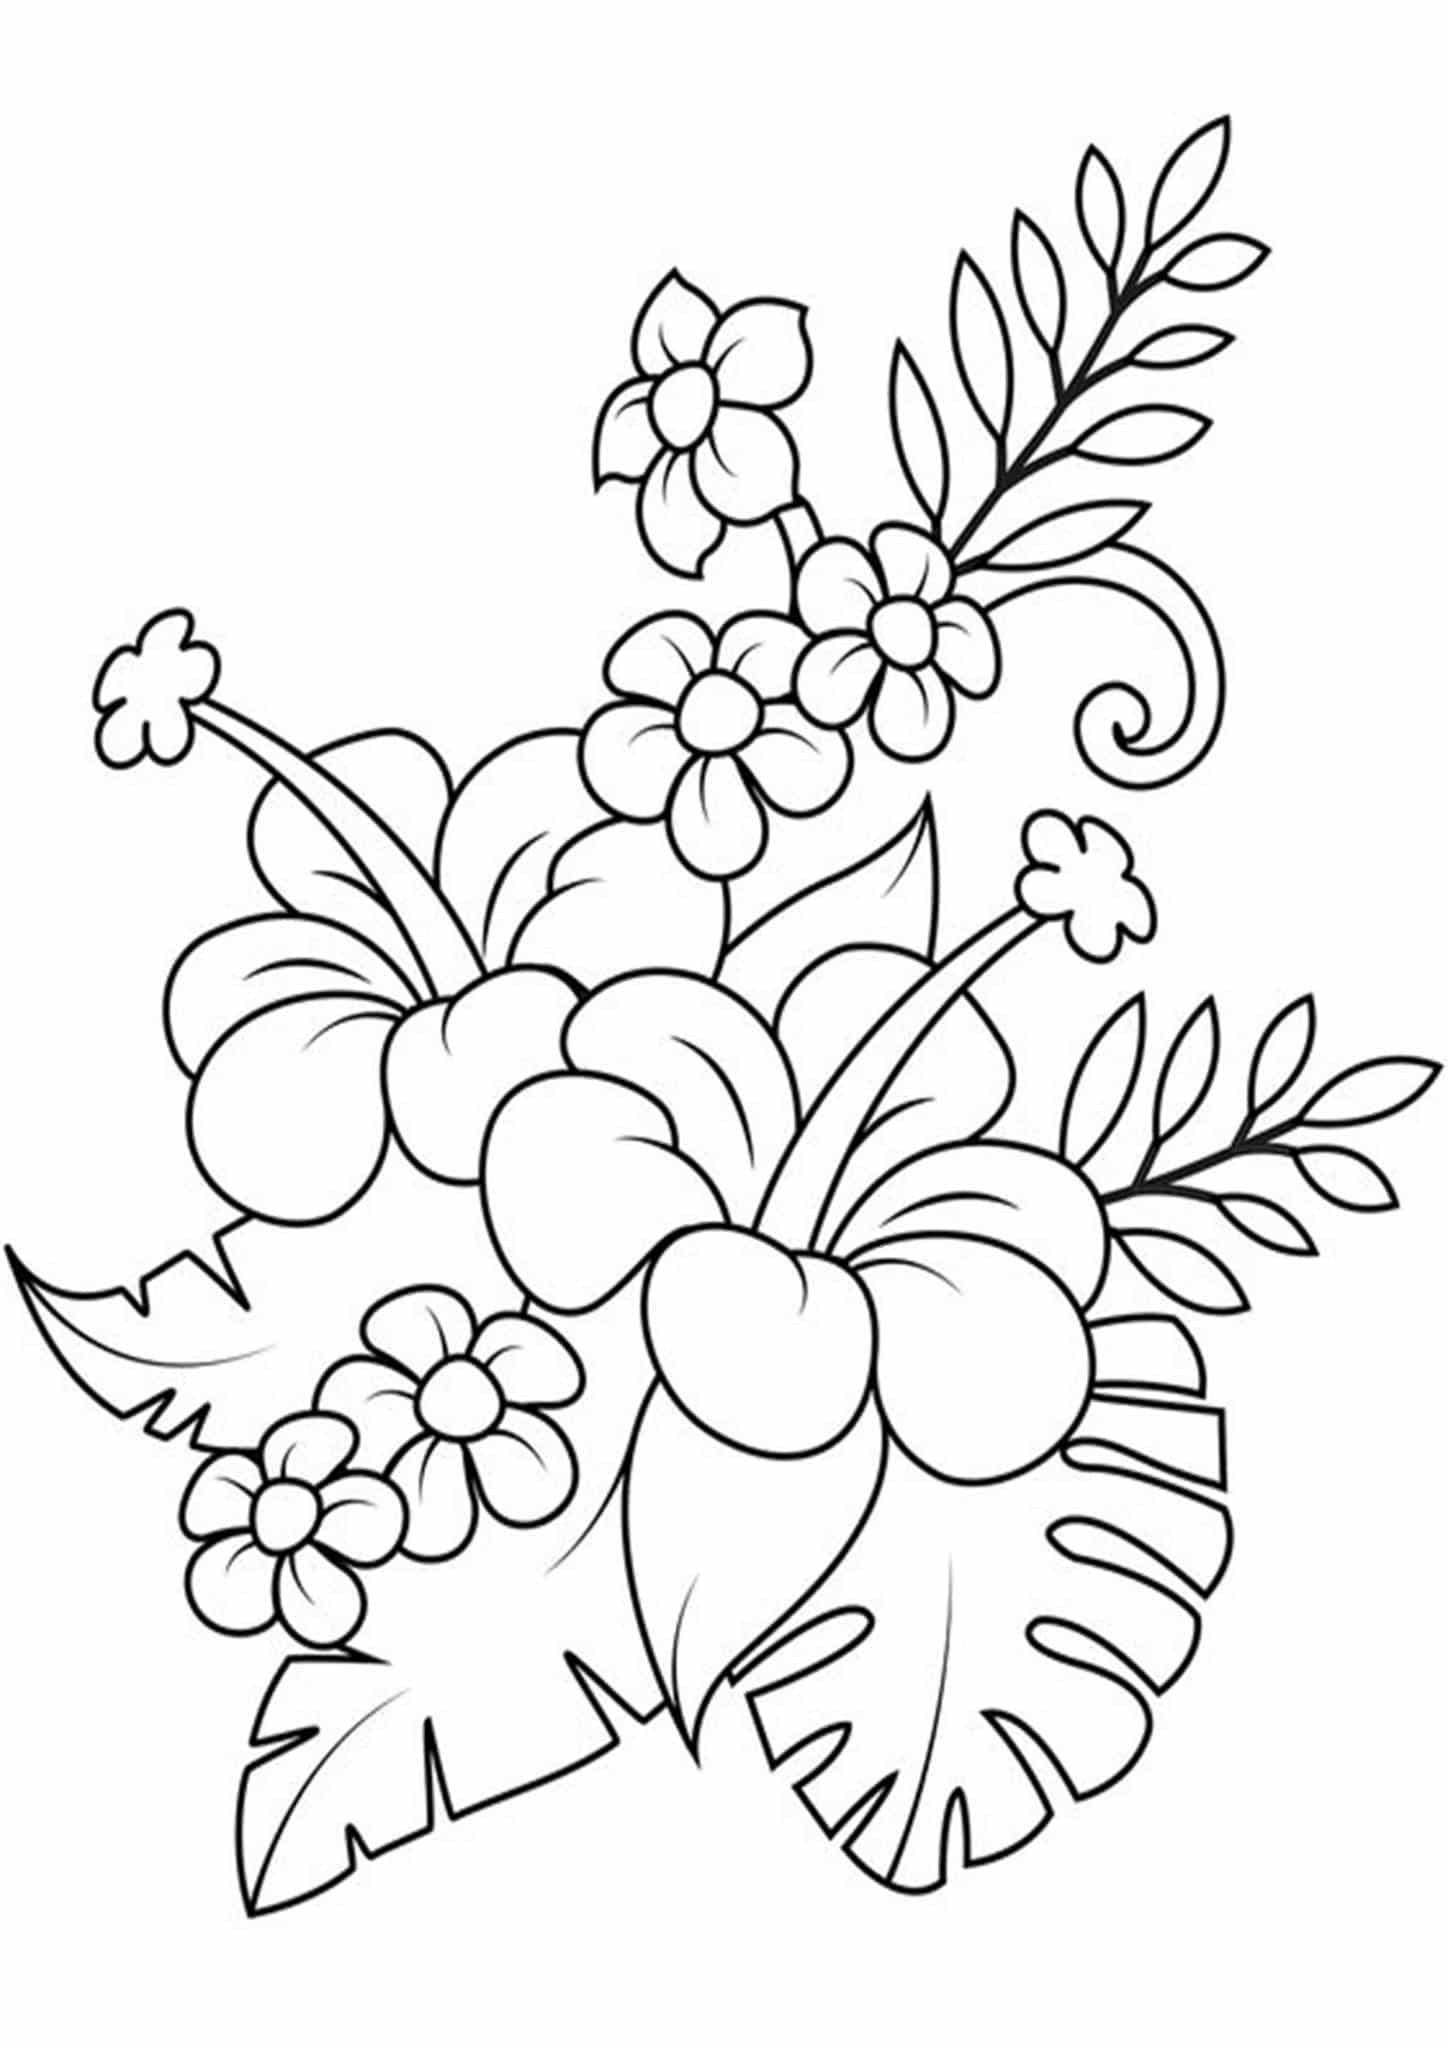 flower bouquet coloring page free easy to print flower coloring pages tulamama bouquet coloring page flower